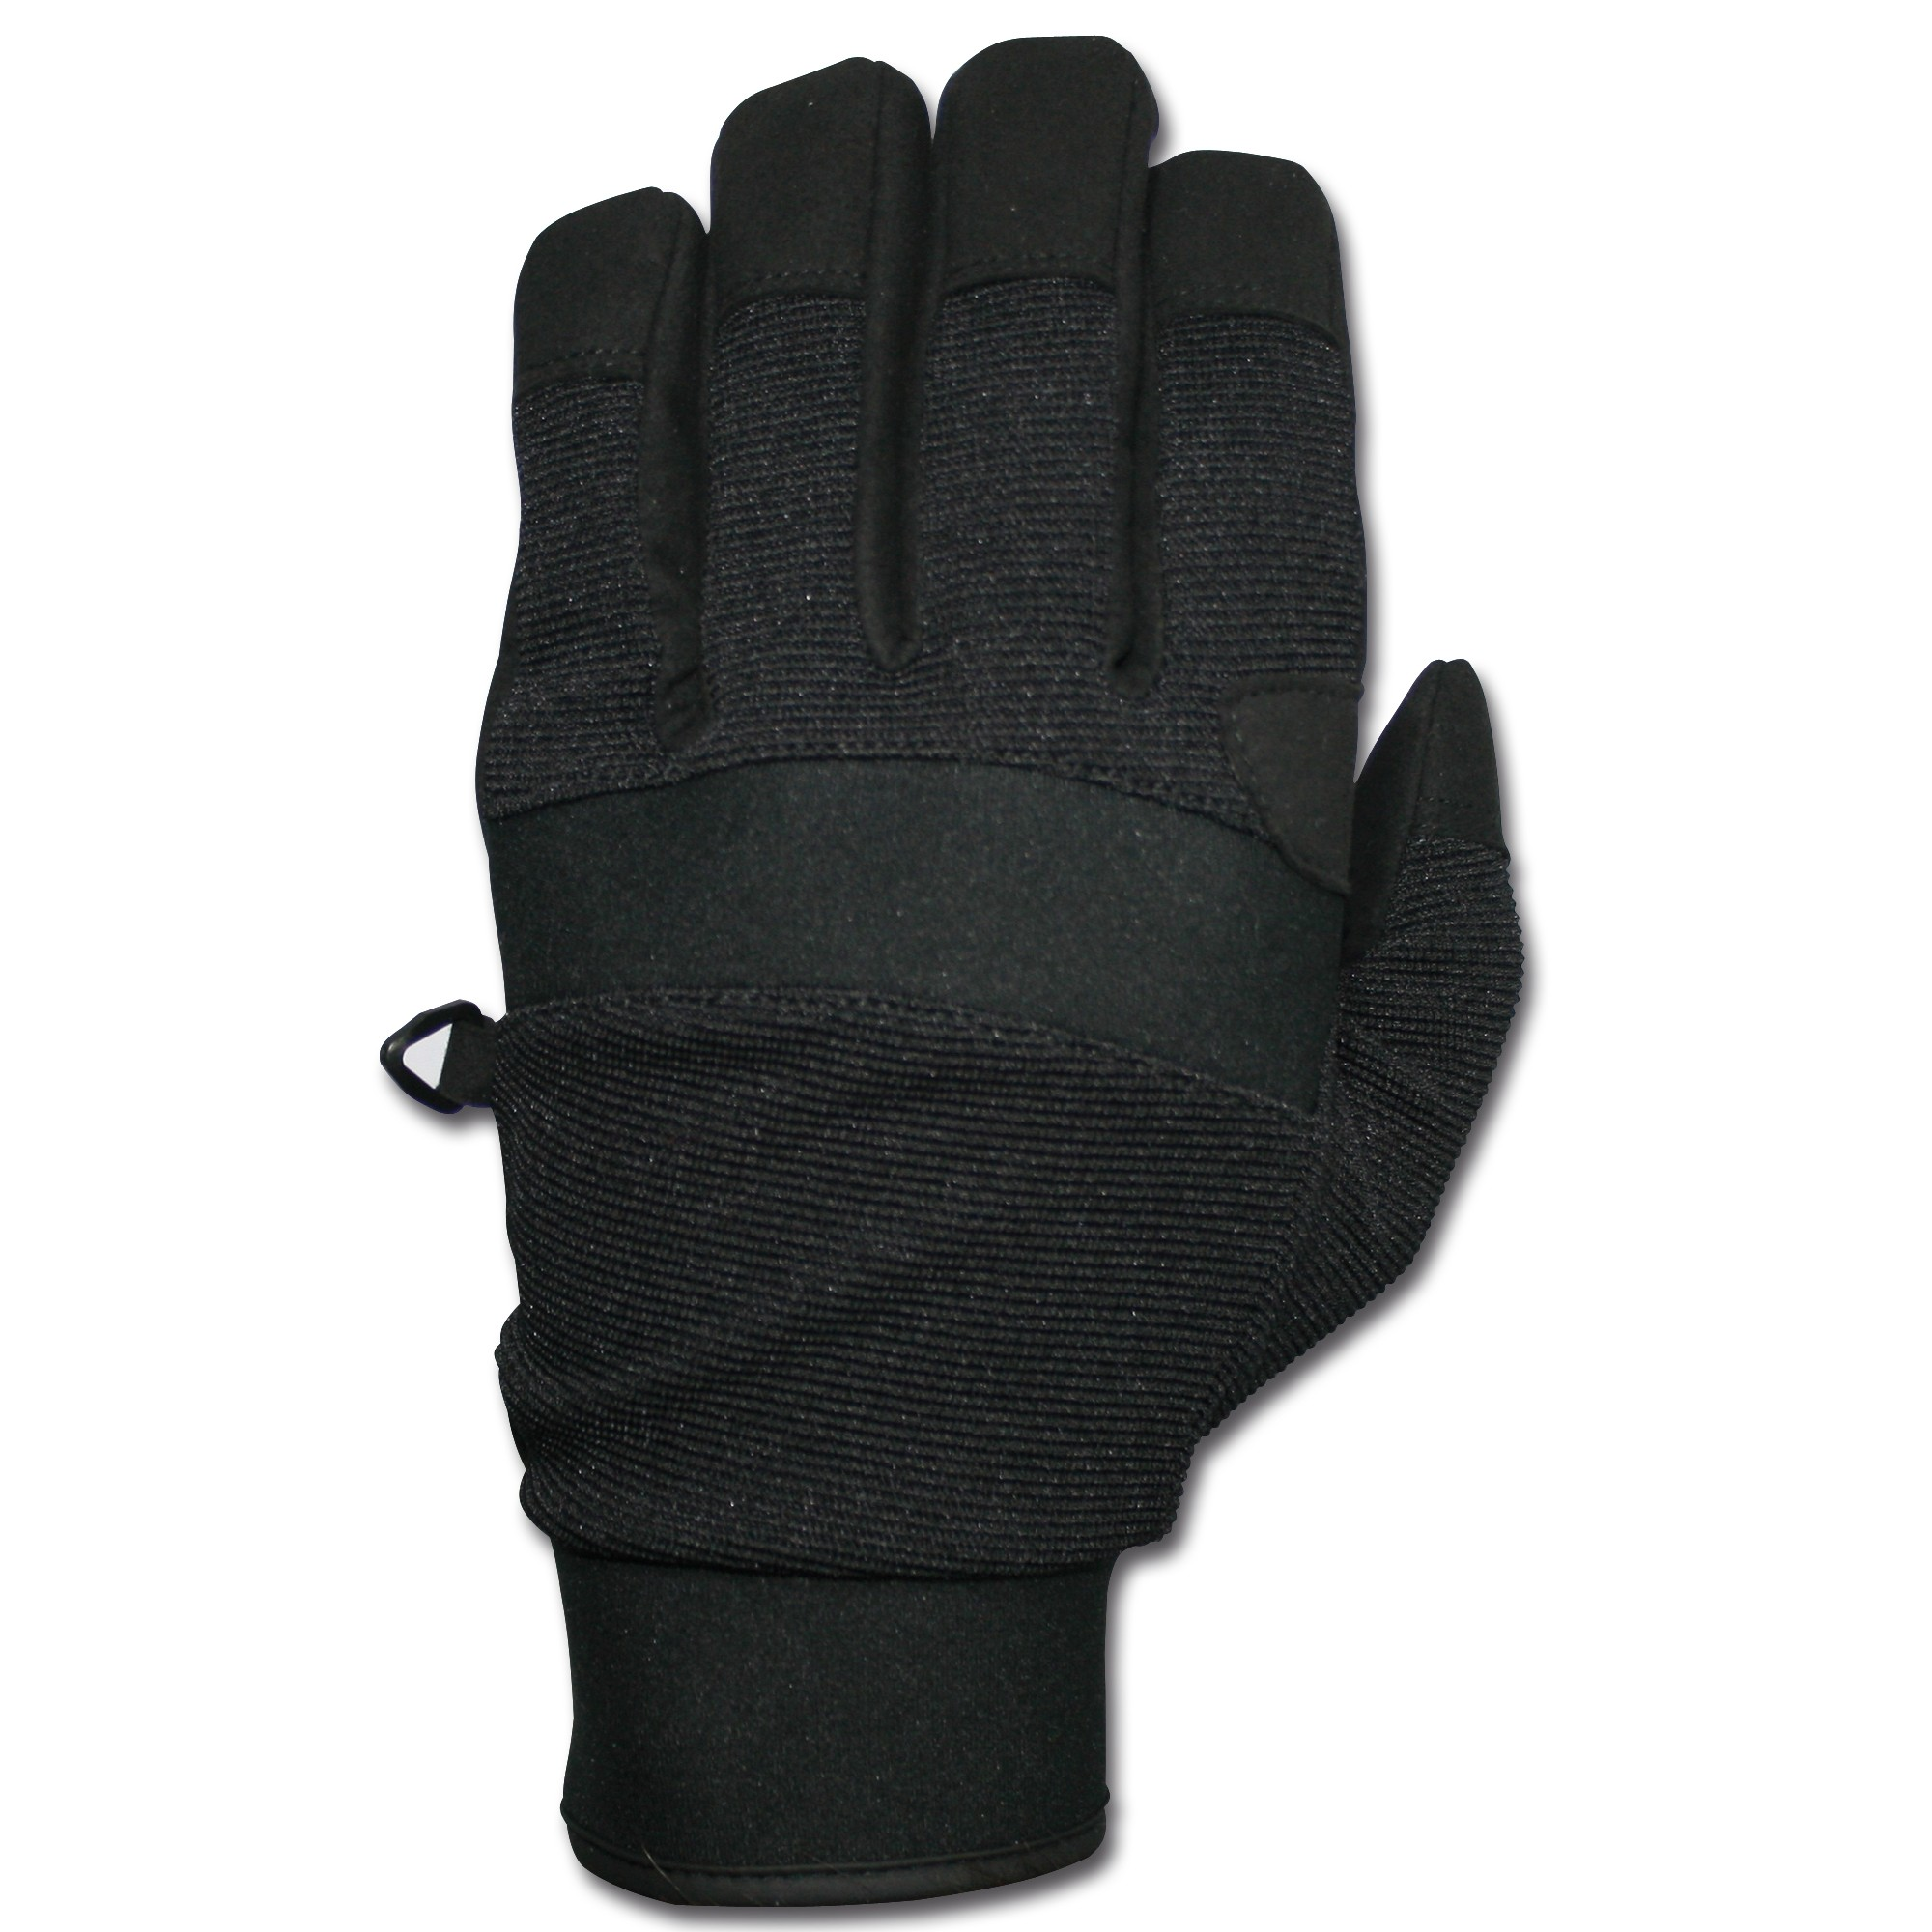 Security Gloves MFH